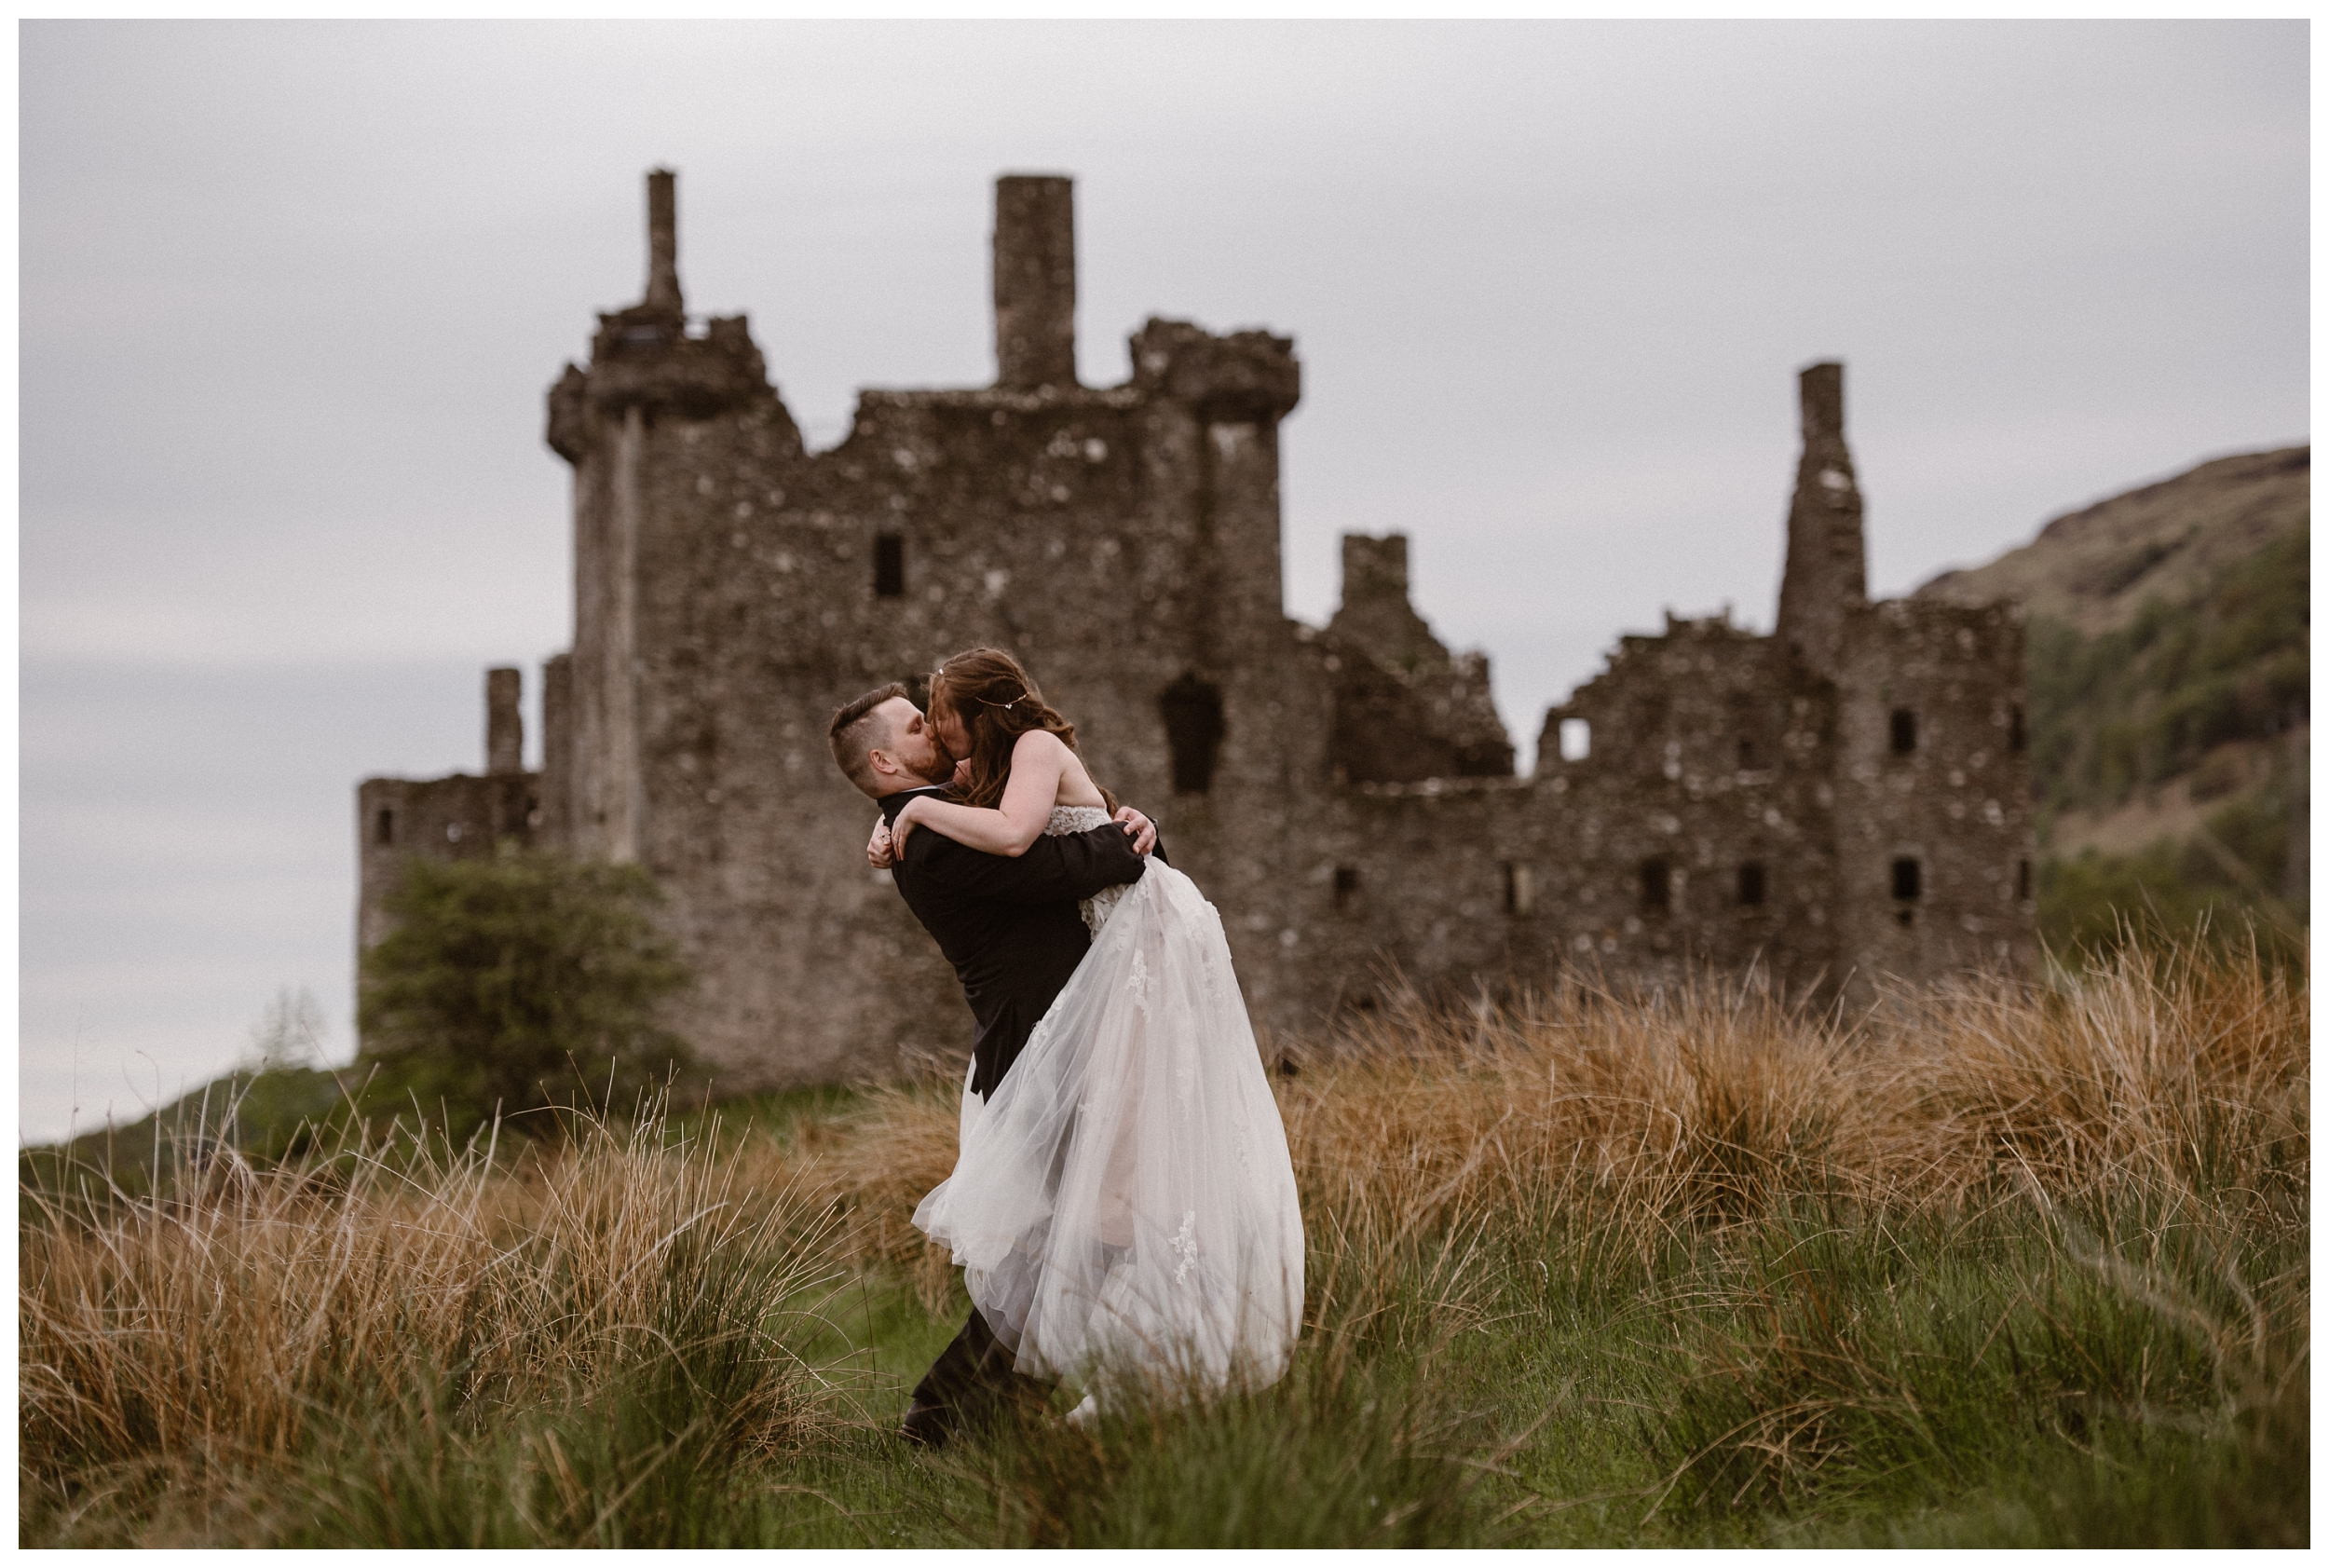 Daniel spins Elissa in the tall grass of the Scottish Highlands with the ruins of mid-15th century castle Kilchurn Castle outside Lochawe Dalmally in Scotland. Photo by Maddie Mae, Adventure Instead.